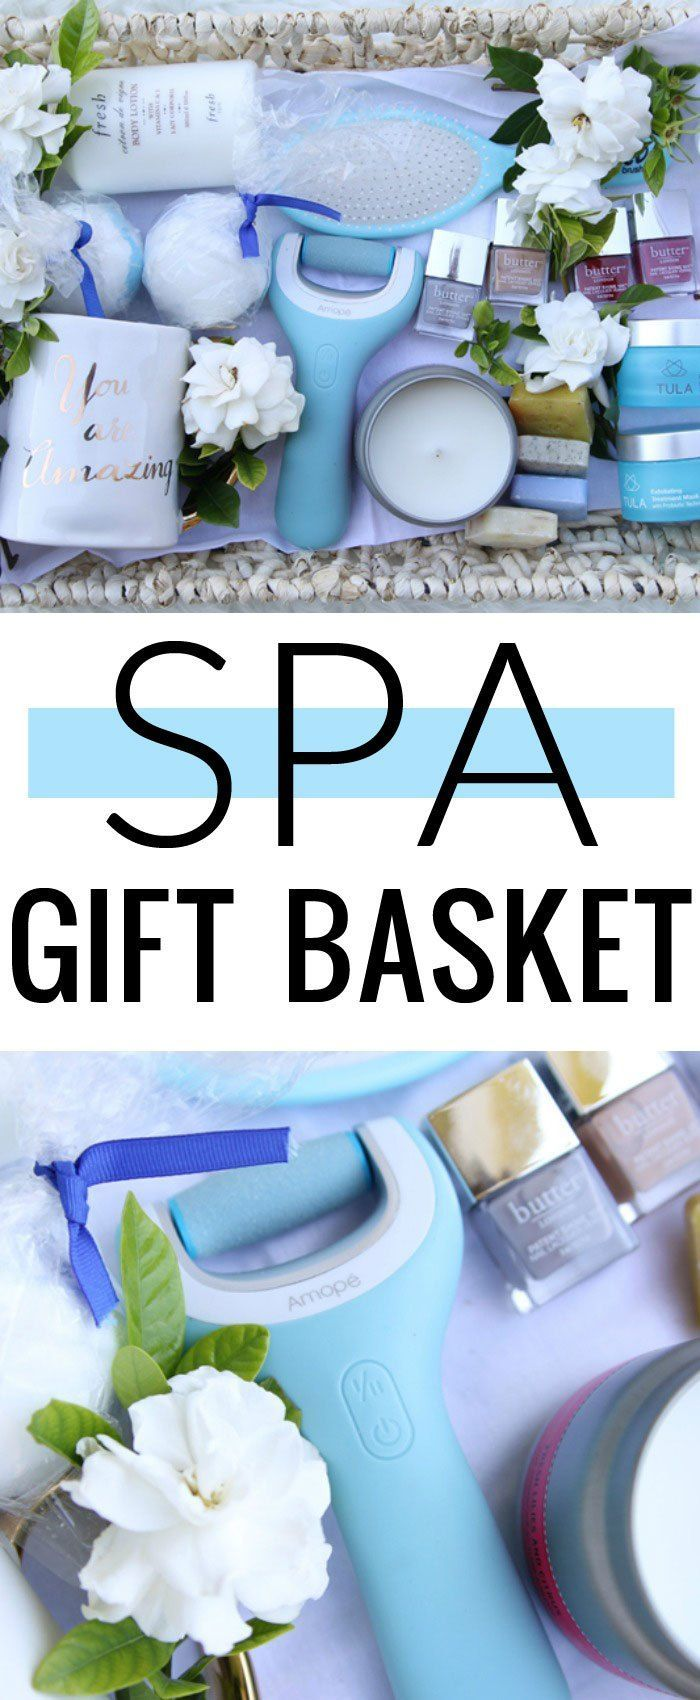 Spa Gift Basket - perfect for any woman that deserves a little pampering!